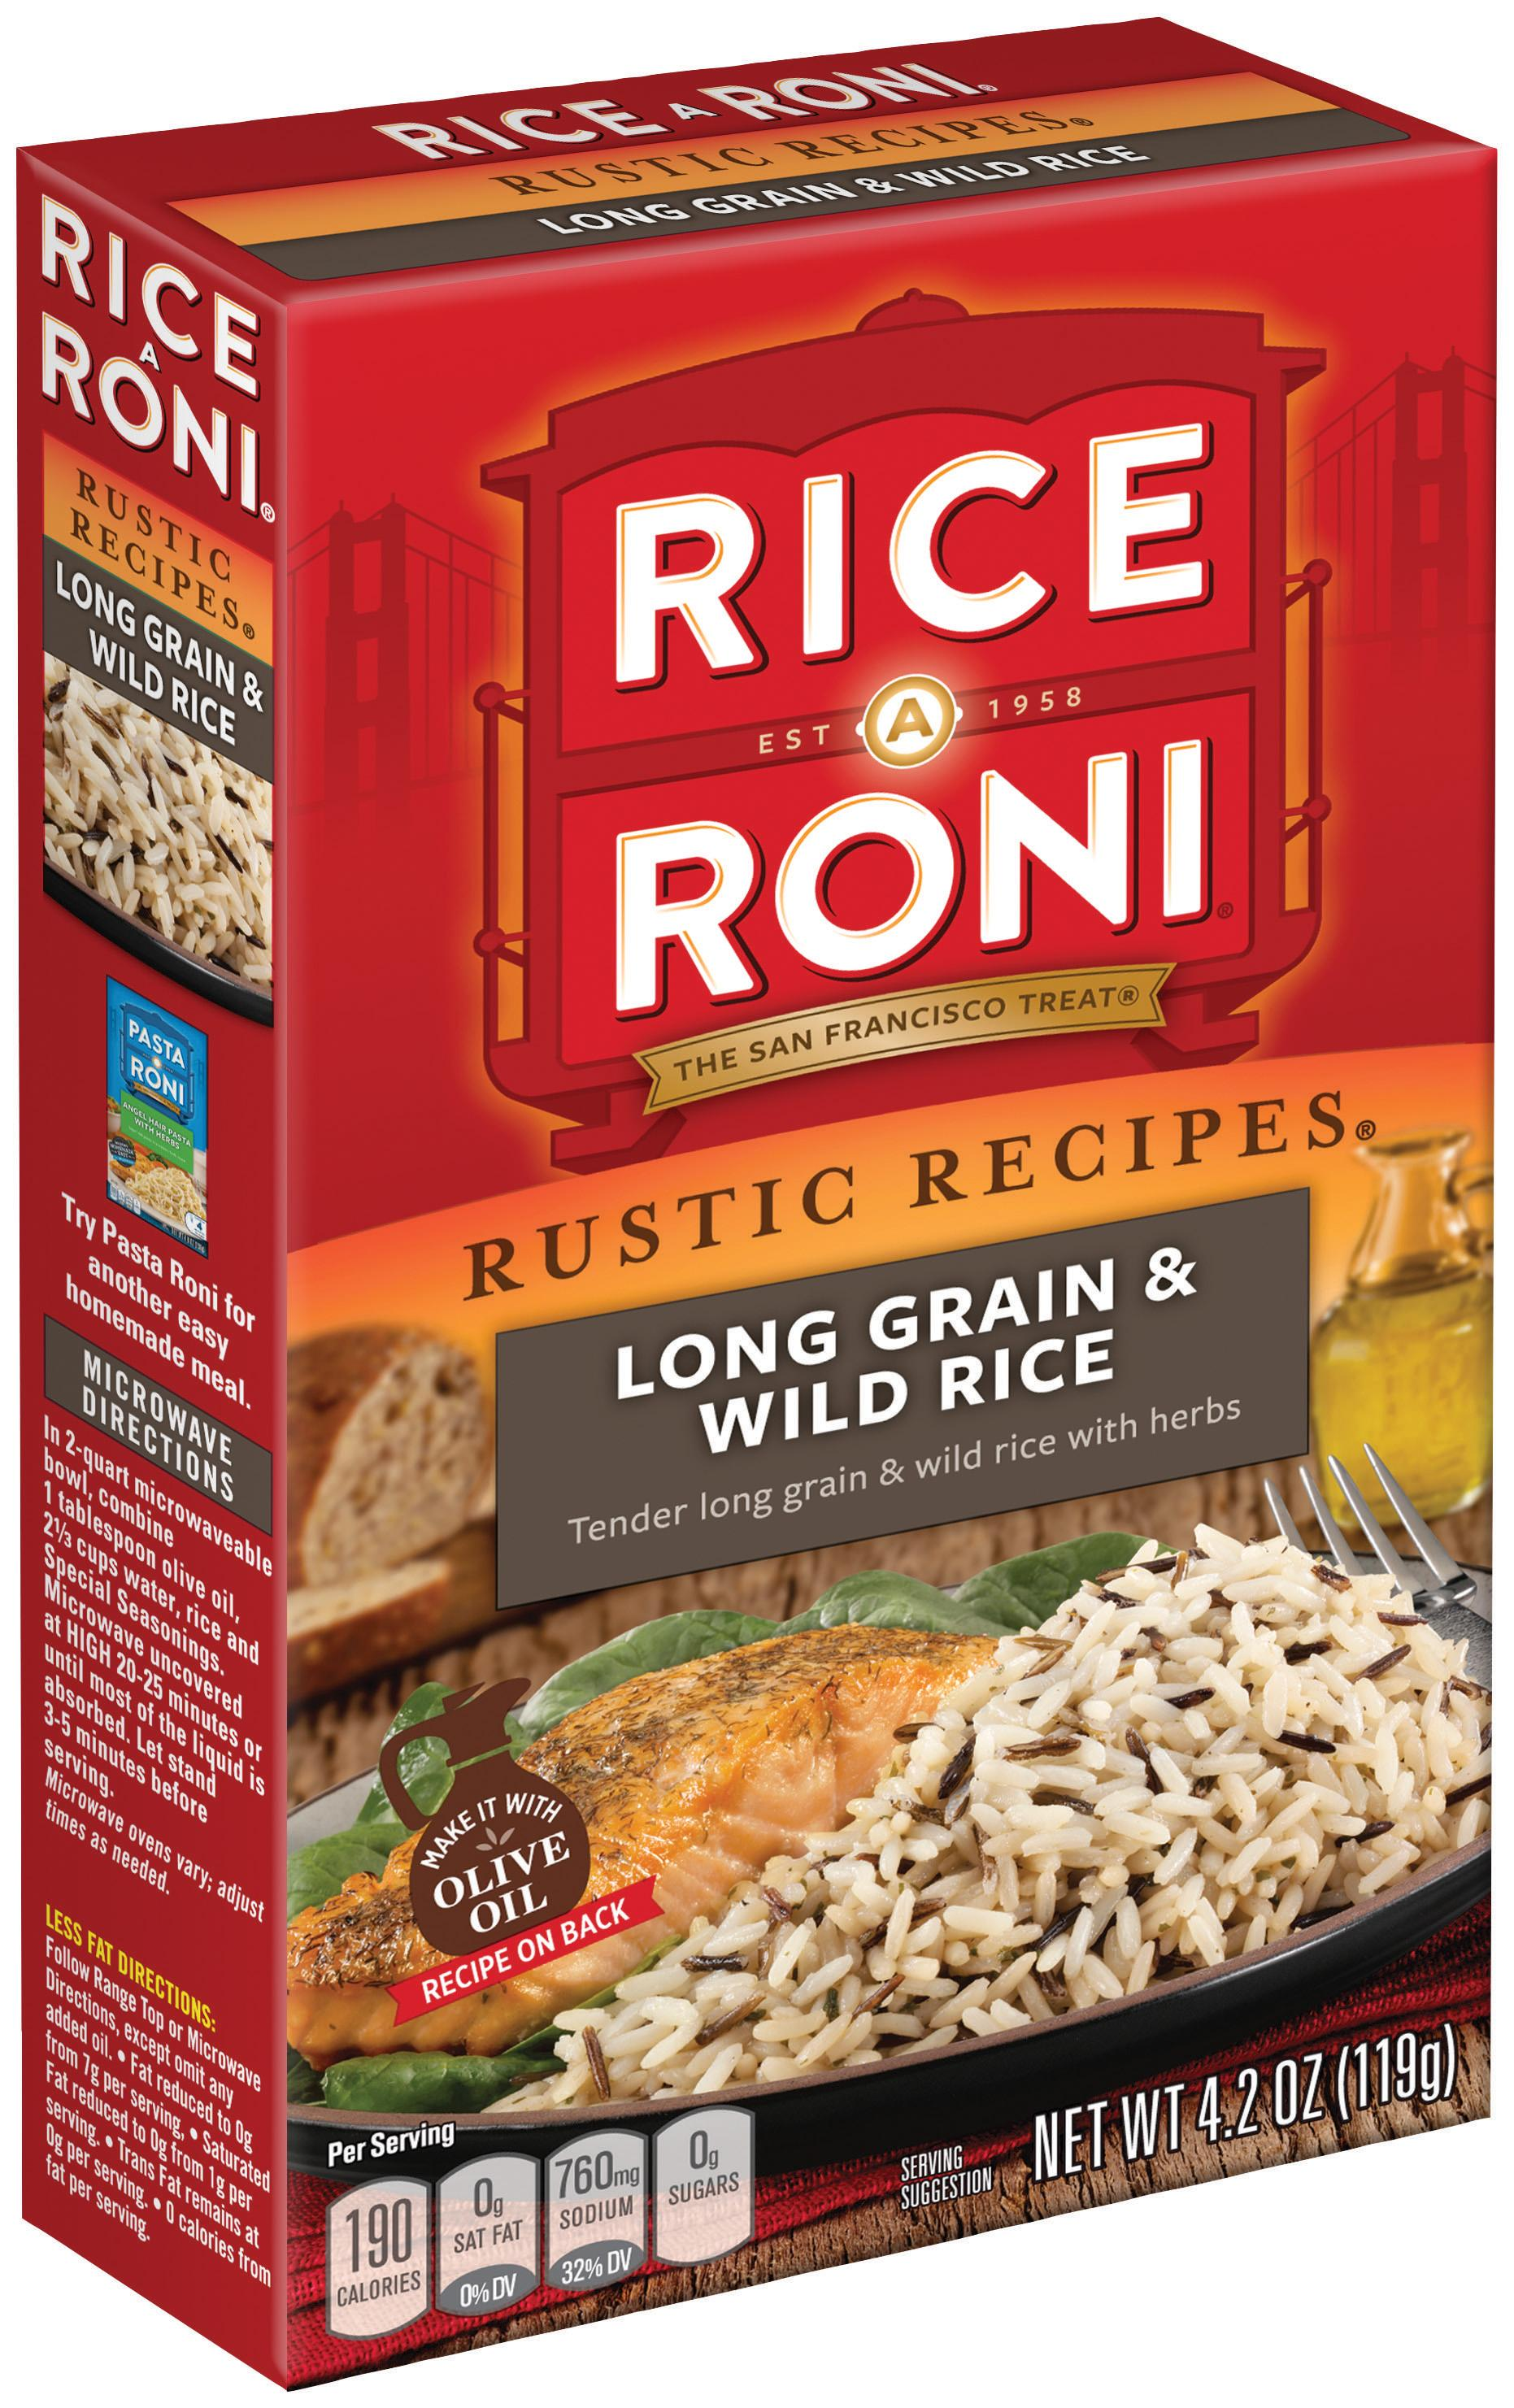 Amazon.com : Rice a Roni, Rustic Recipies, Long Grain and